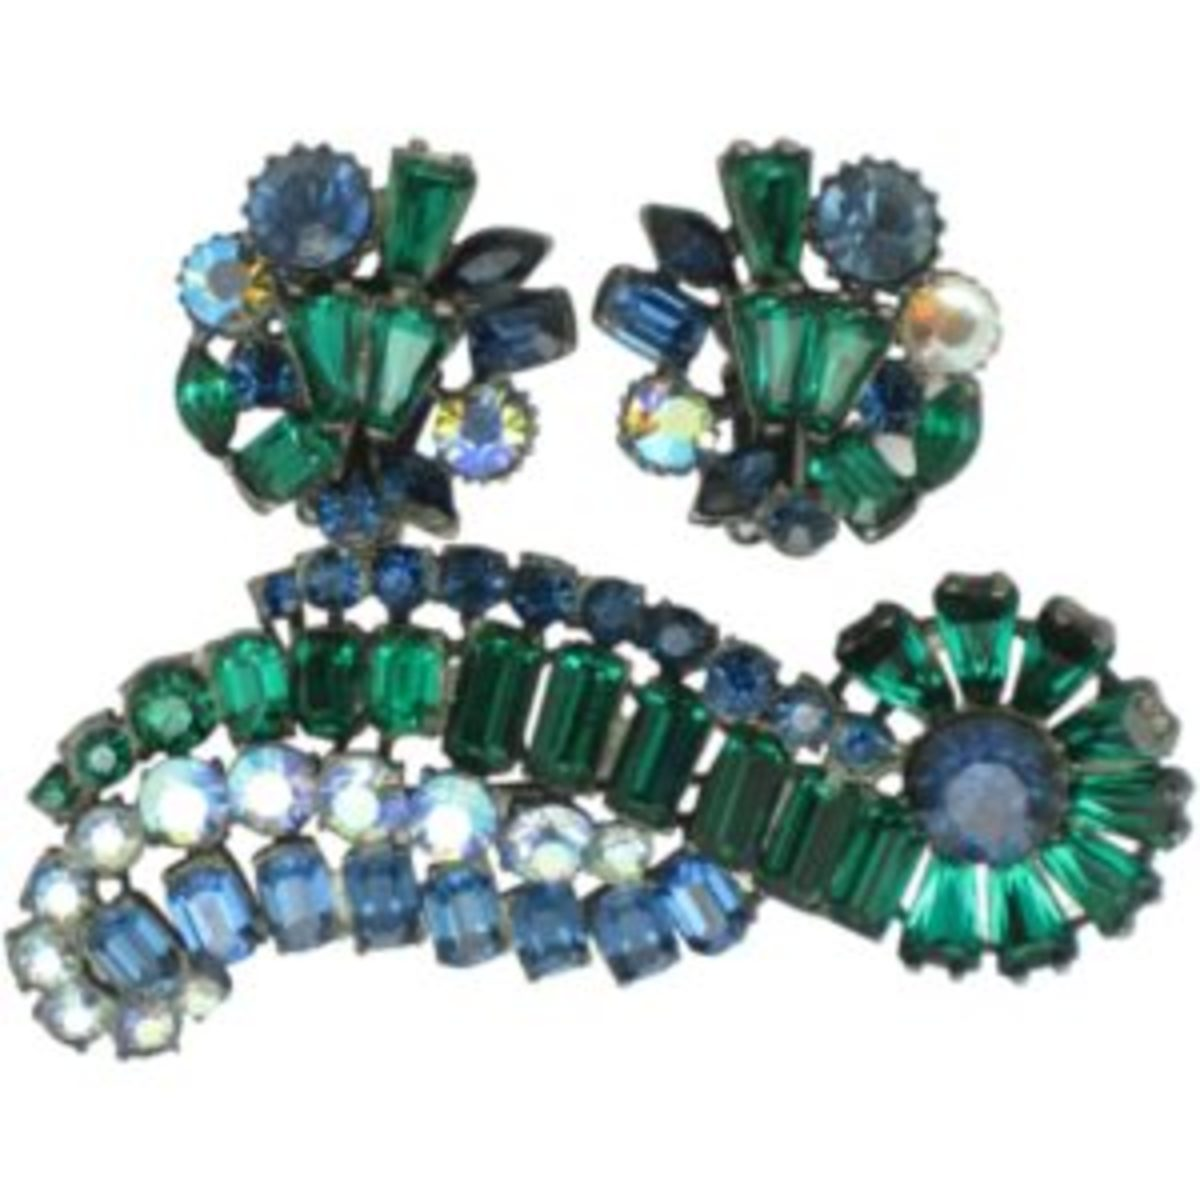 Stunning and large vintage signed Claudette emerald, sapphire, aurora borealis rhinestone and keystone brooch and matching clip style earrings. The set features a gorgeous combination of stones including emerald green keystones and baguettes, sapphire blue chatons, baguettes and navettes and aurora borealis chatons. $94. Courtesy of Ruby Lane